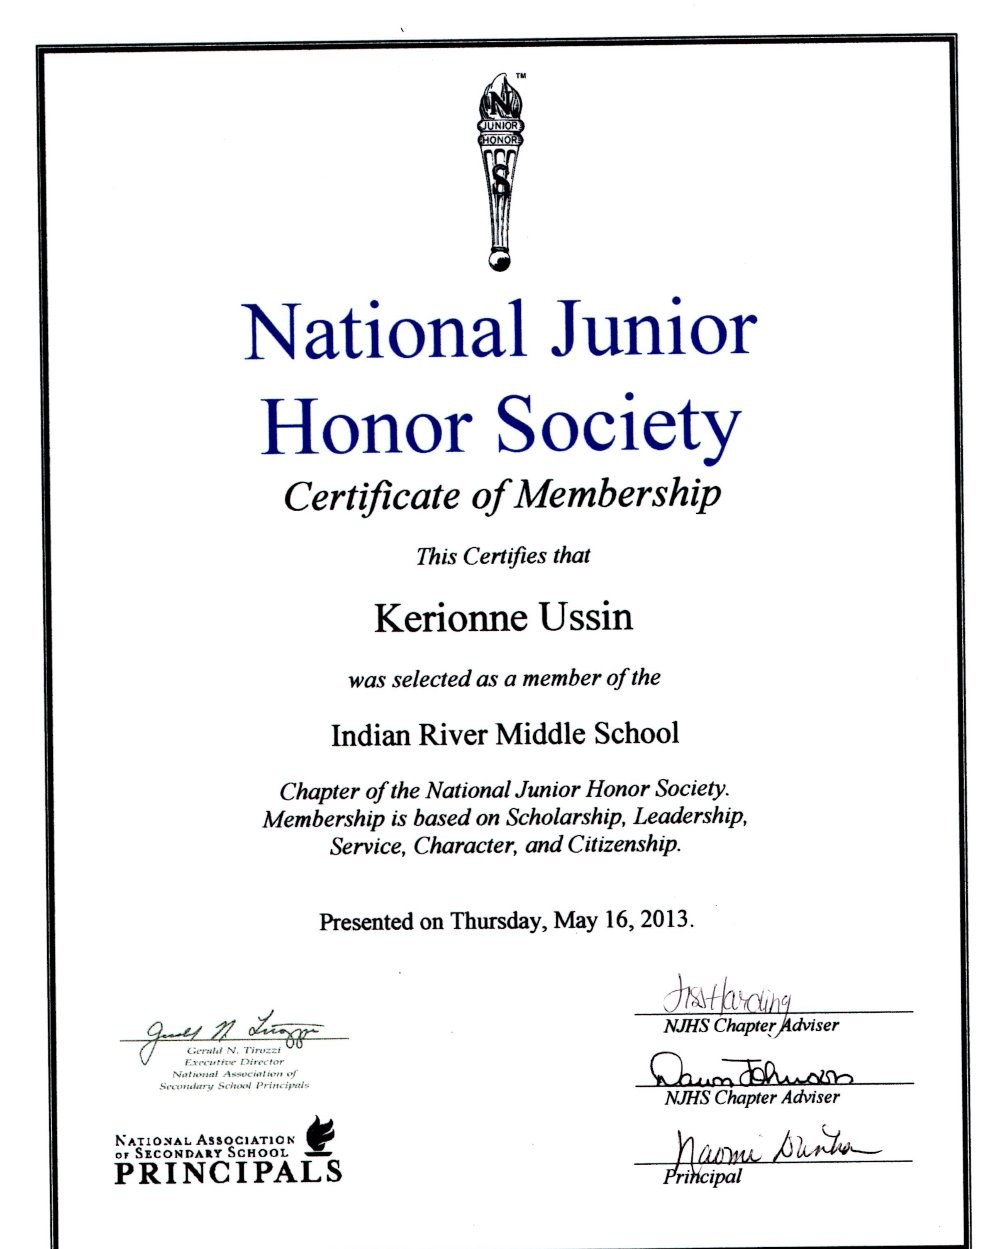 national junior honor society essay sample The national junior honor society recognizes students who excel  to be  considered, students often need to submit an essay outlining their   being paid , so this is a good place to highlight your volunteer experience.